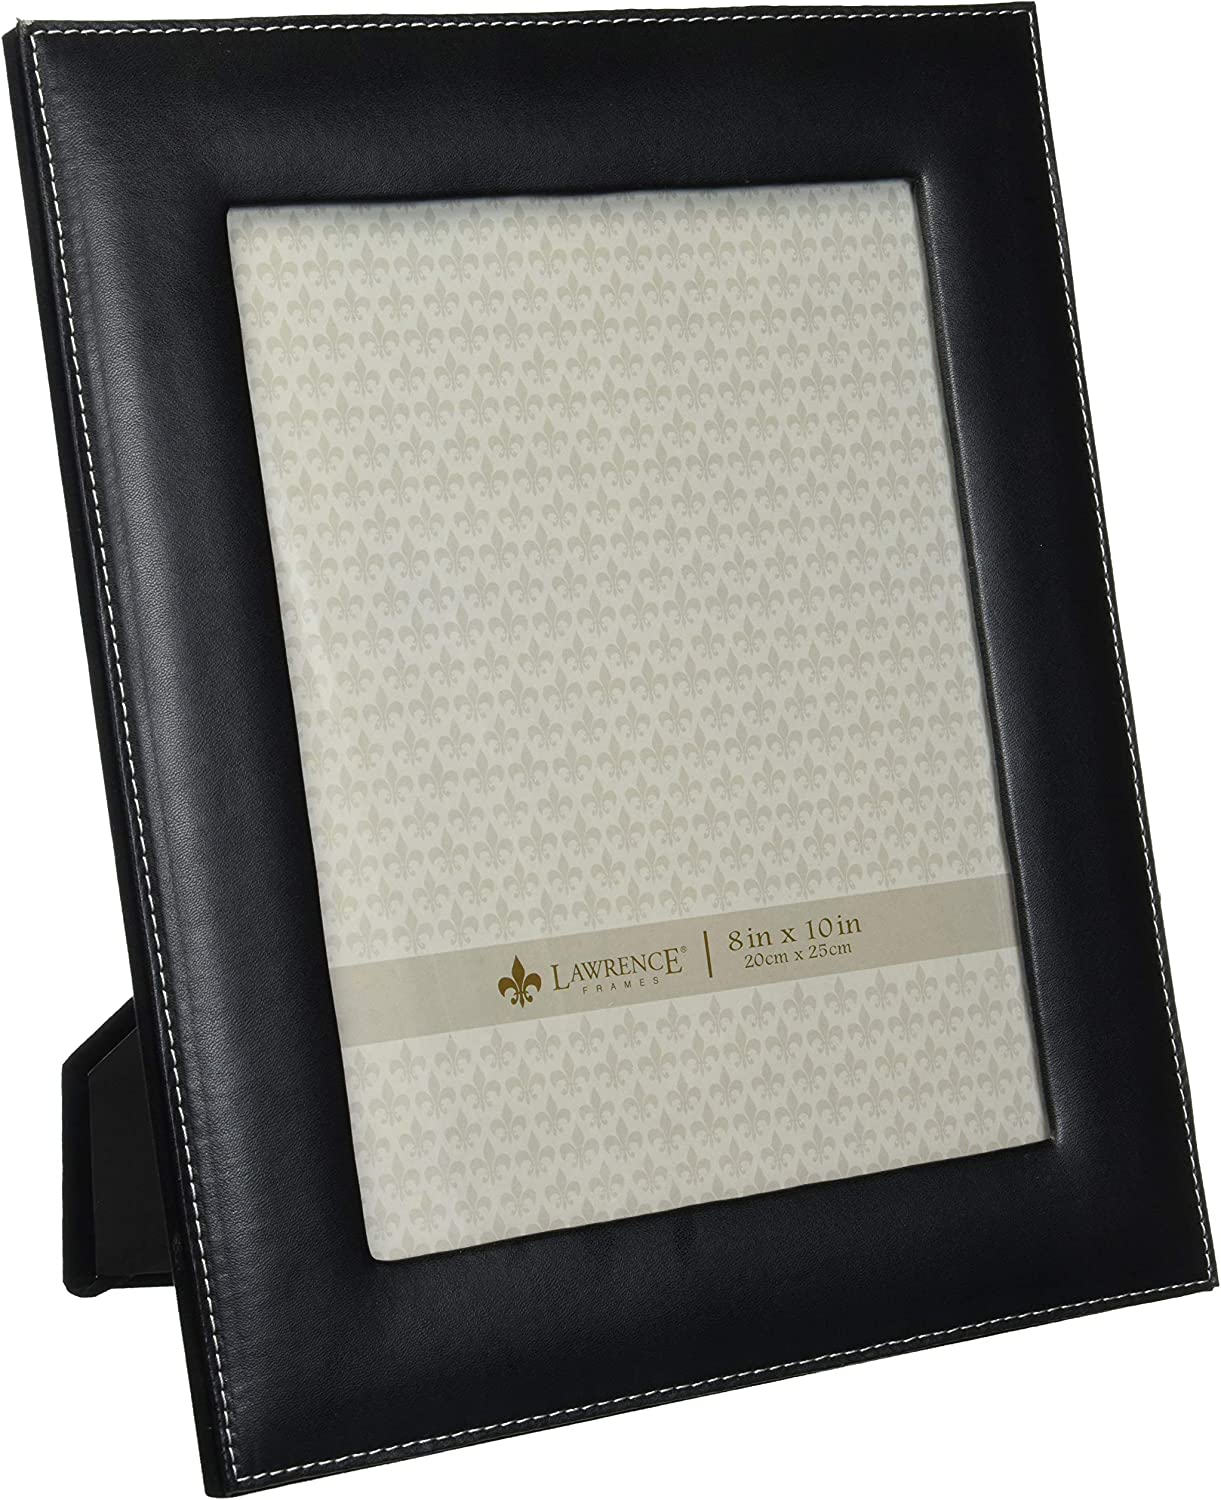 Lawrence Frames Black Leather 8 By 10 Picture Frame Amazon Co Uk Kitchen Home